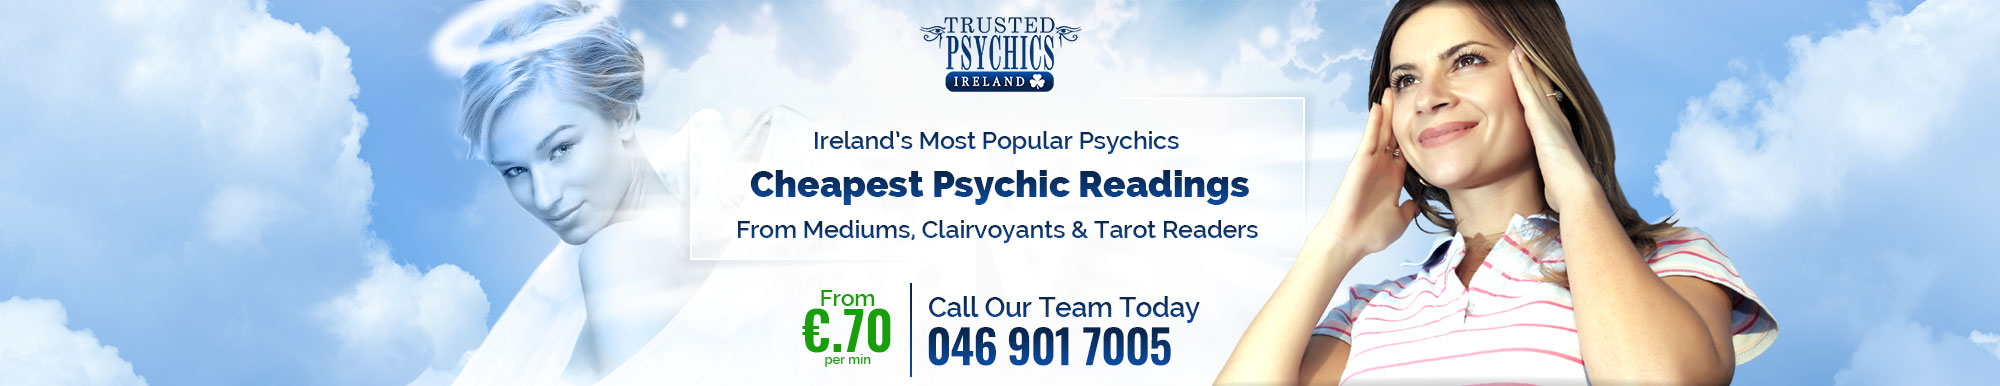 Trusted Psychics Header